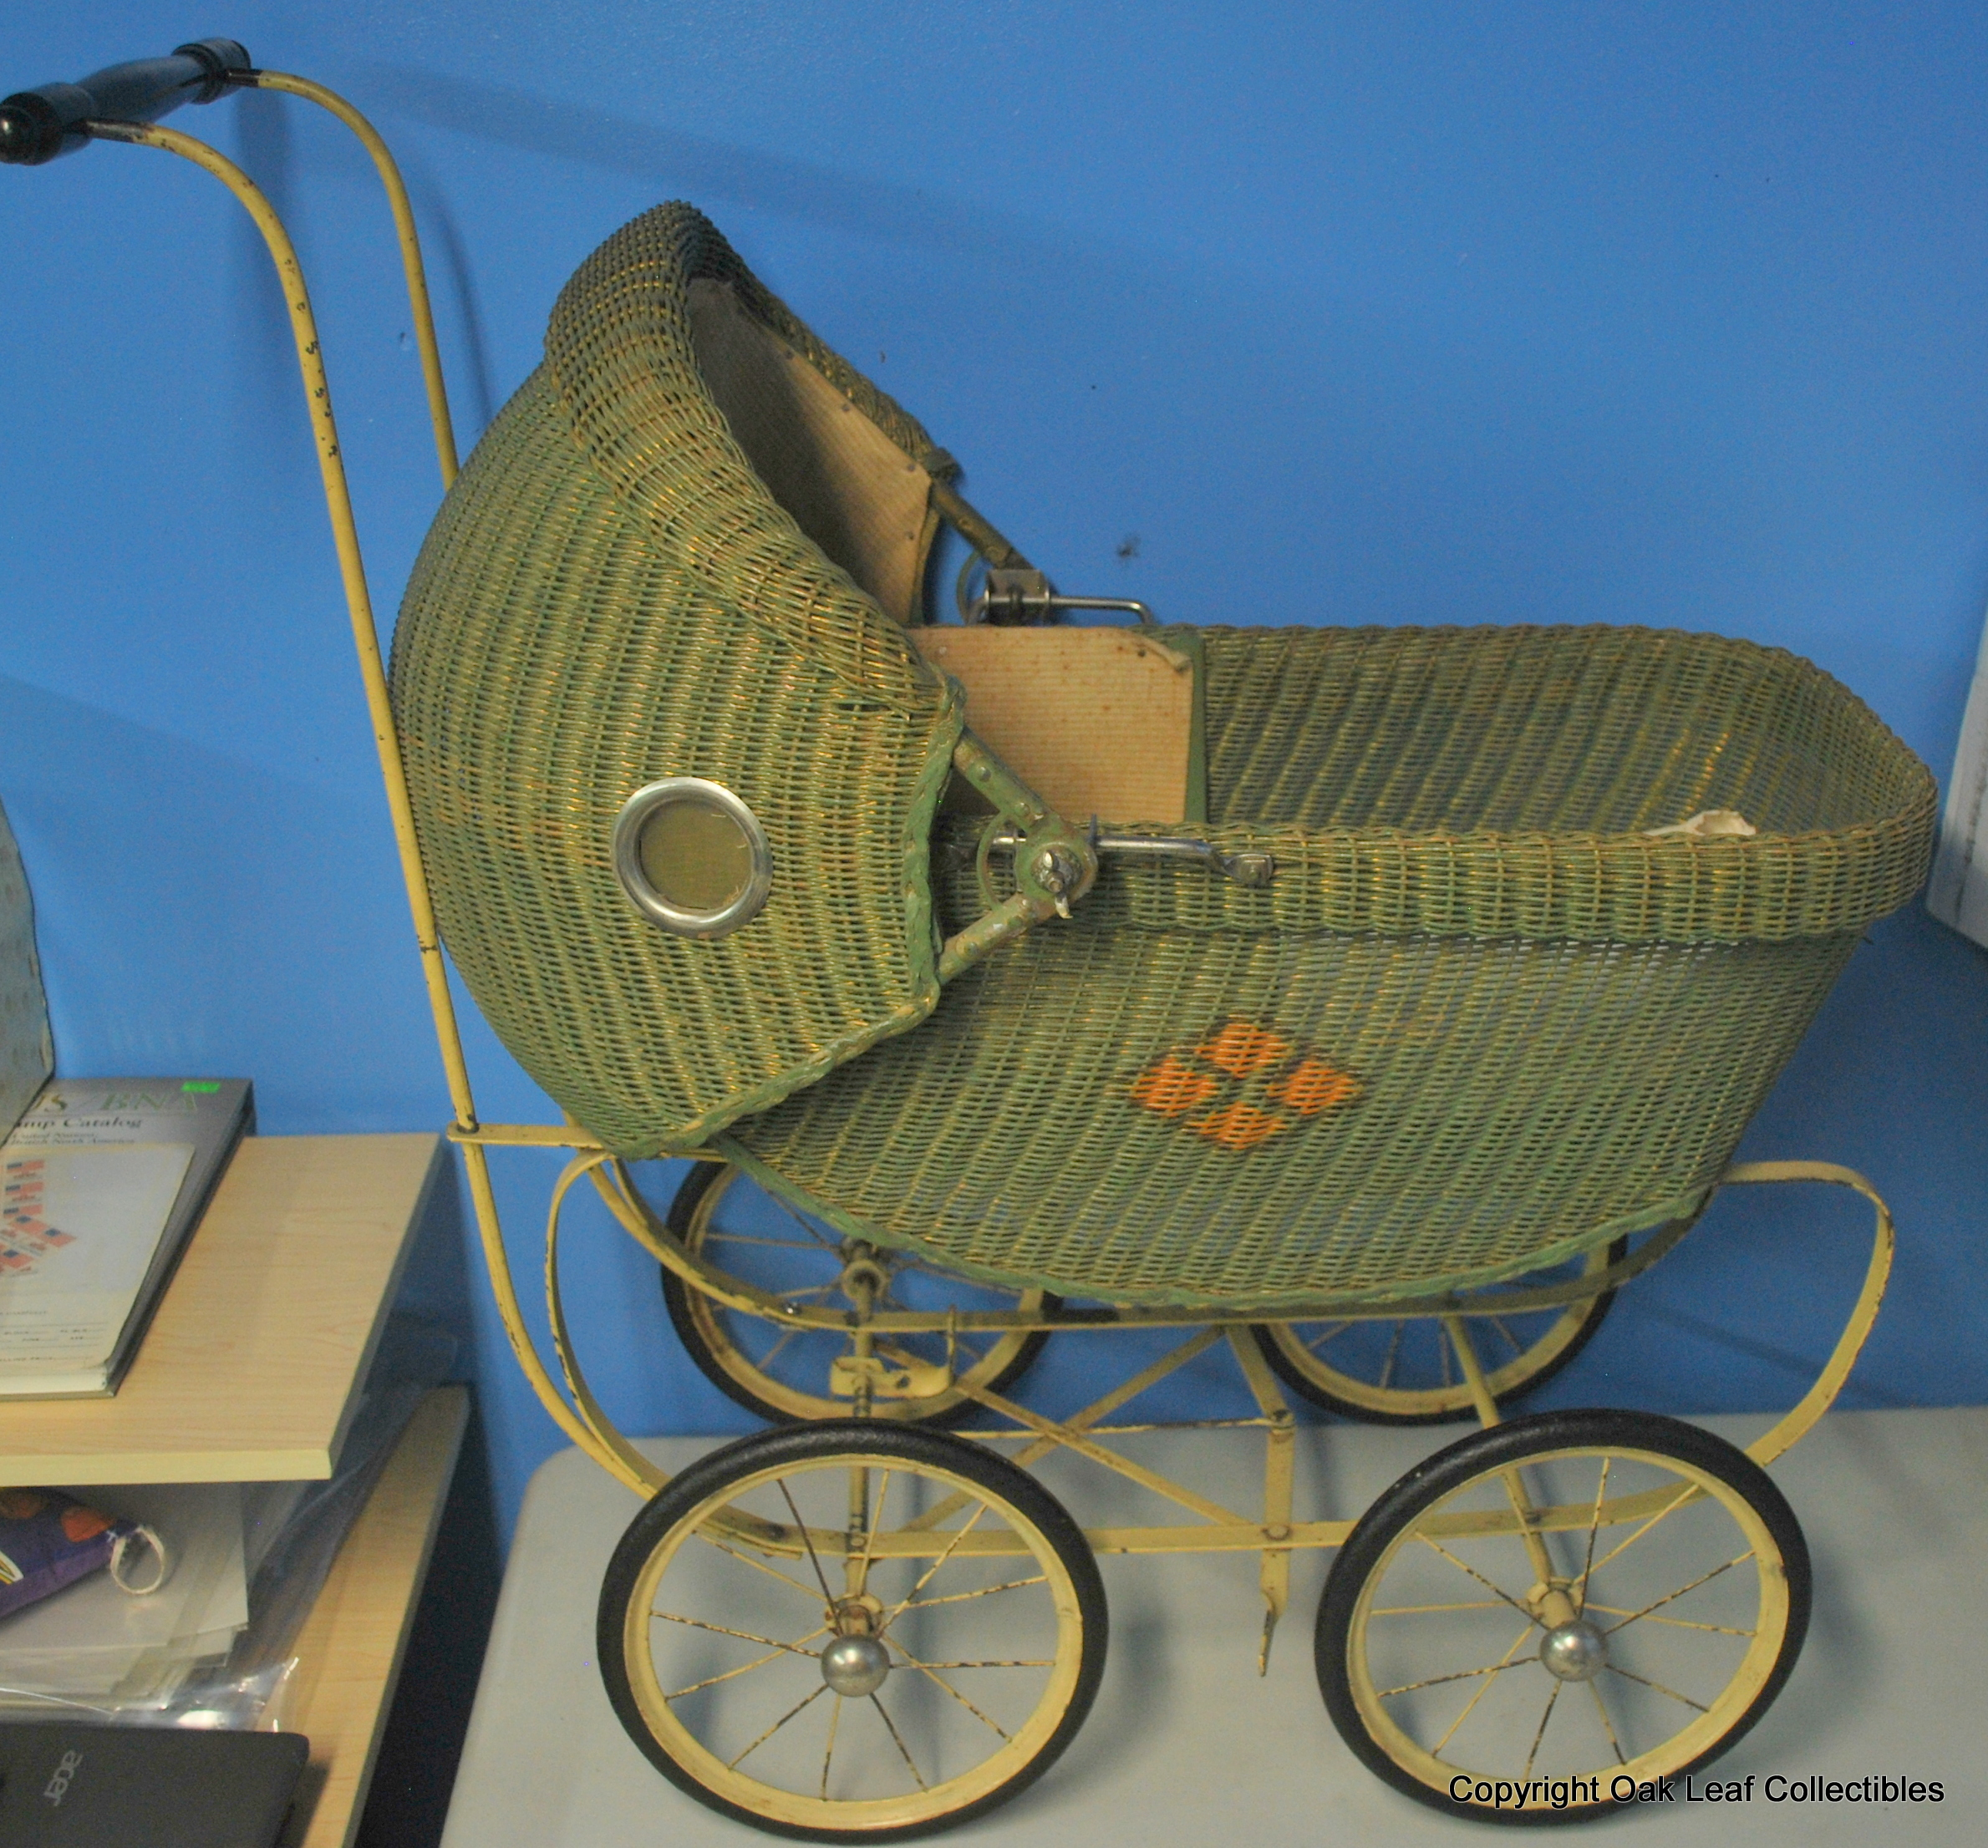 Vintage Toy Stroller Details About Vintage Baby Doll Carriage Stroller Buggy Cloth Wicker With Bedding Pillow